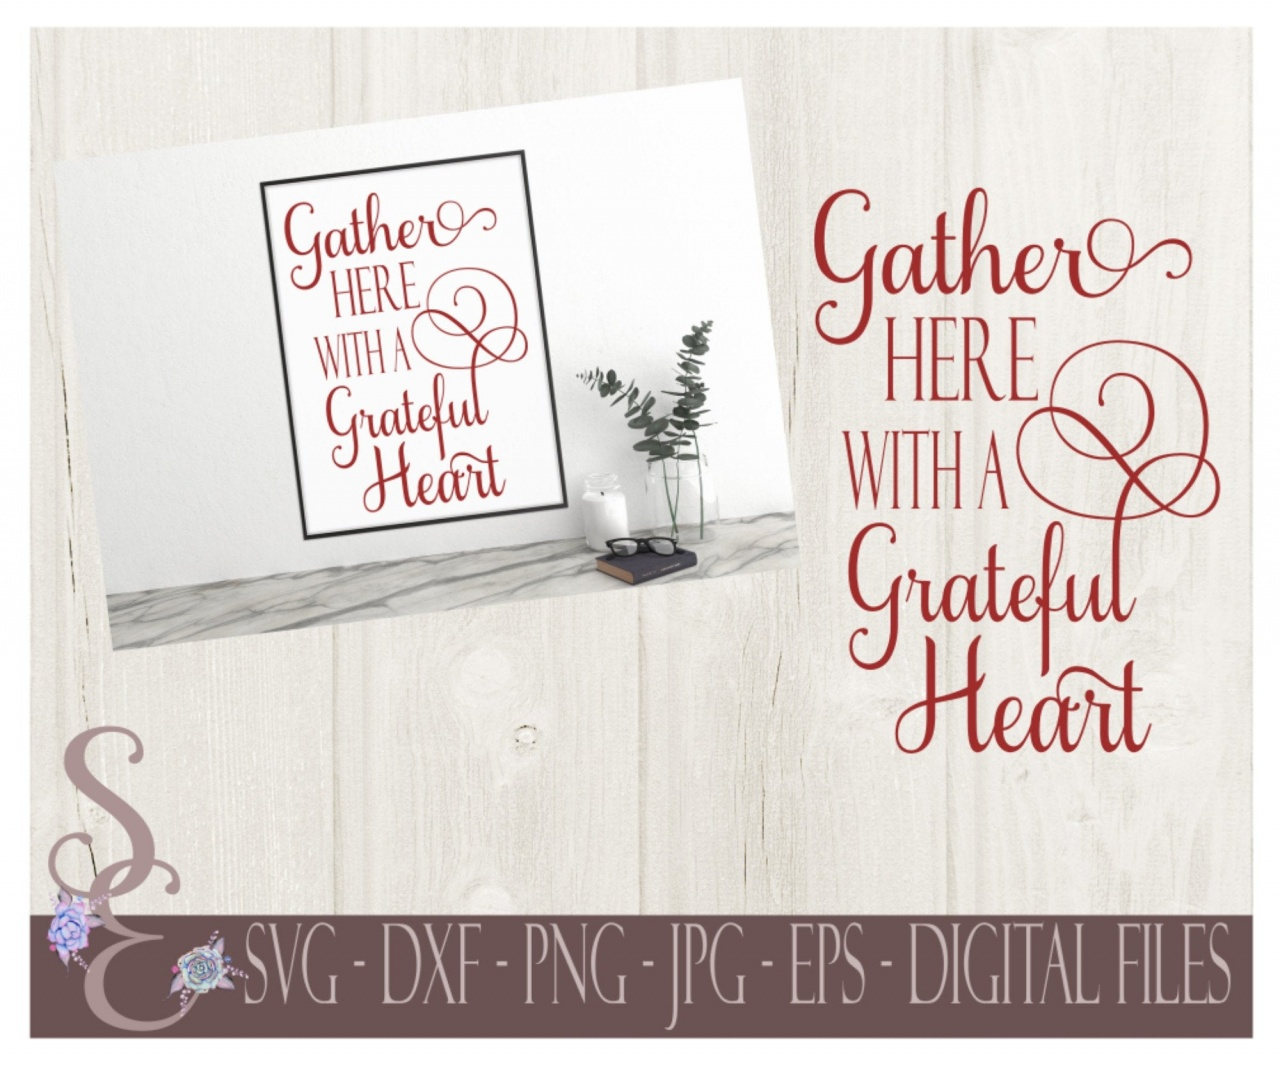 Cricut Vs Silhouette For Vinyl Gather Here With A Grateful Heart Svg Fall Thanksgiving Digital Cut File Cricut Silhouette Dxf Png Jpg Eps Print File Equalmarriagefl Vinyl From Cricut Vs Silhouette